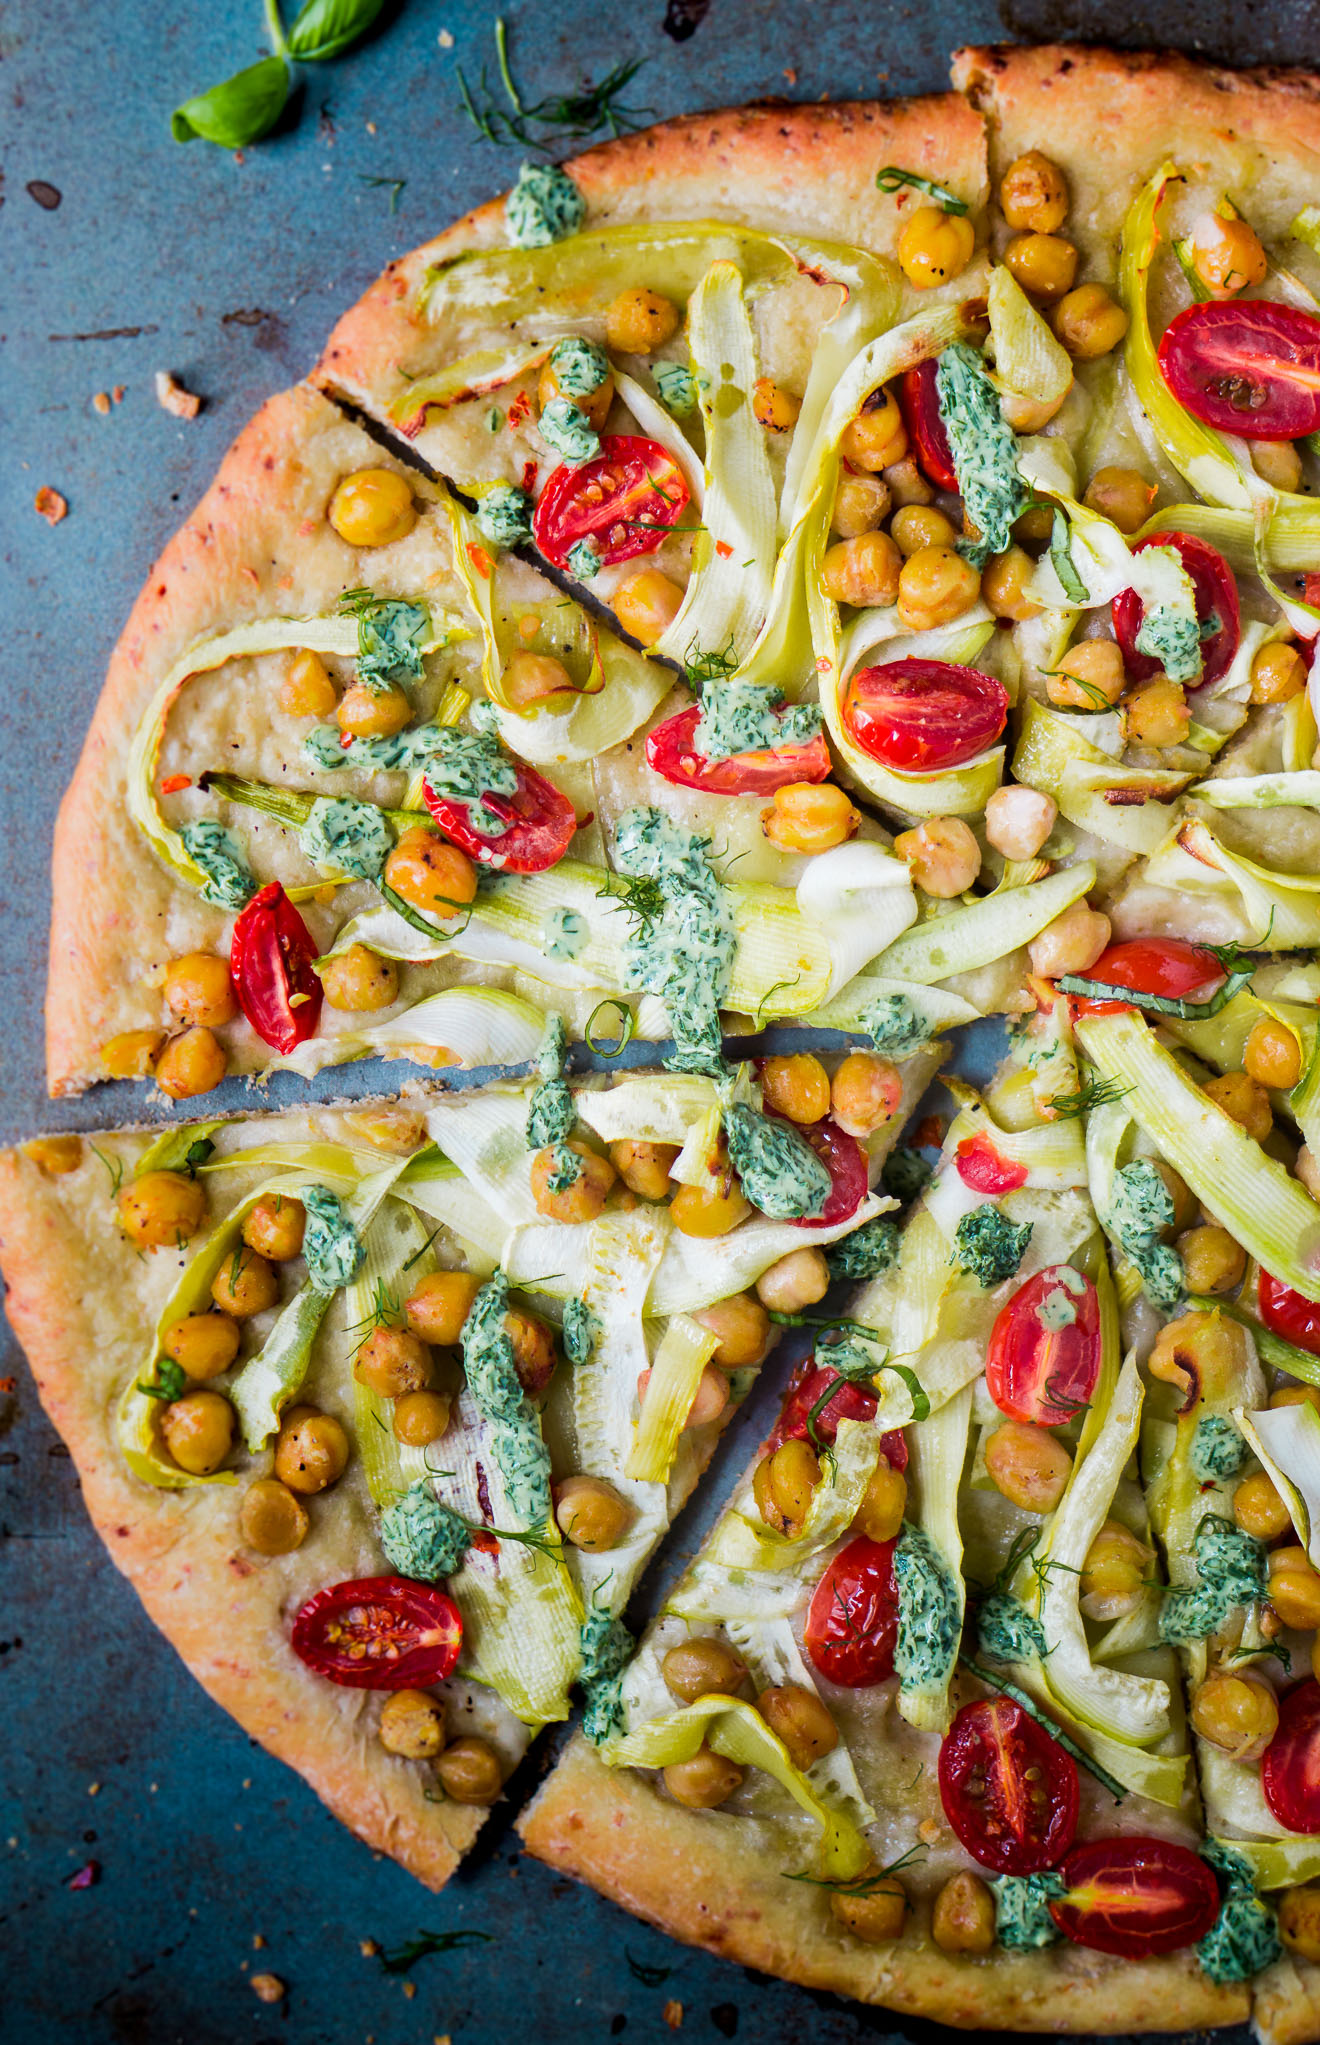 Summer-Squash-Veggie-Pizza-Simple-Ingredients-Flavorful-Plant-Based